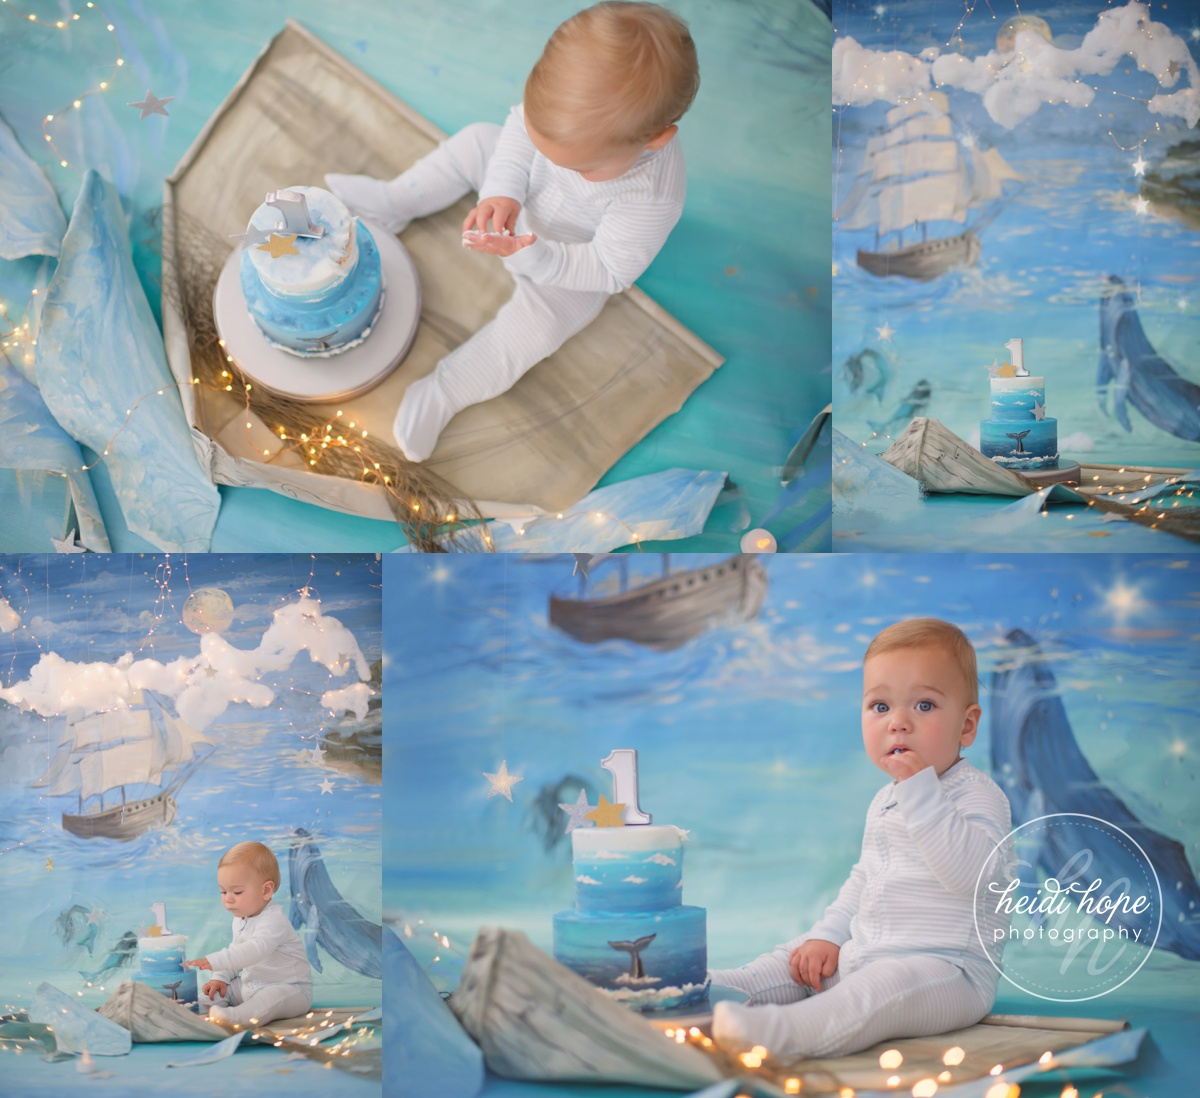 land of nod nautical peter pan magical background first birthday cakesmash01 (4)